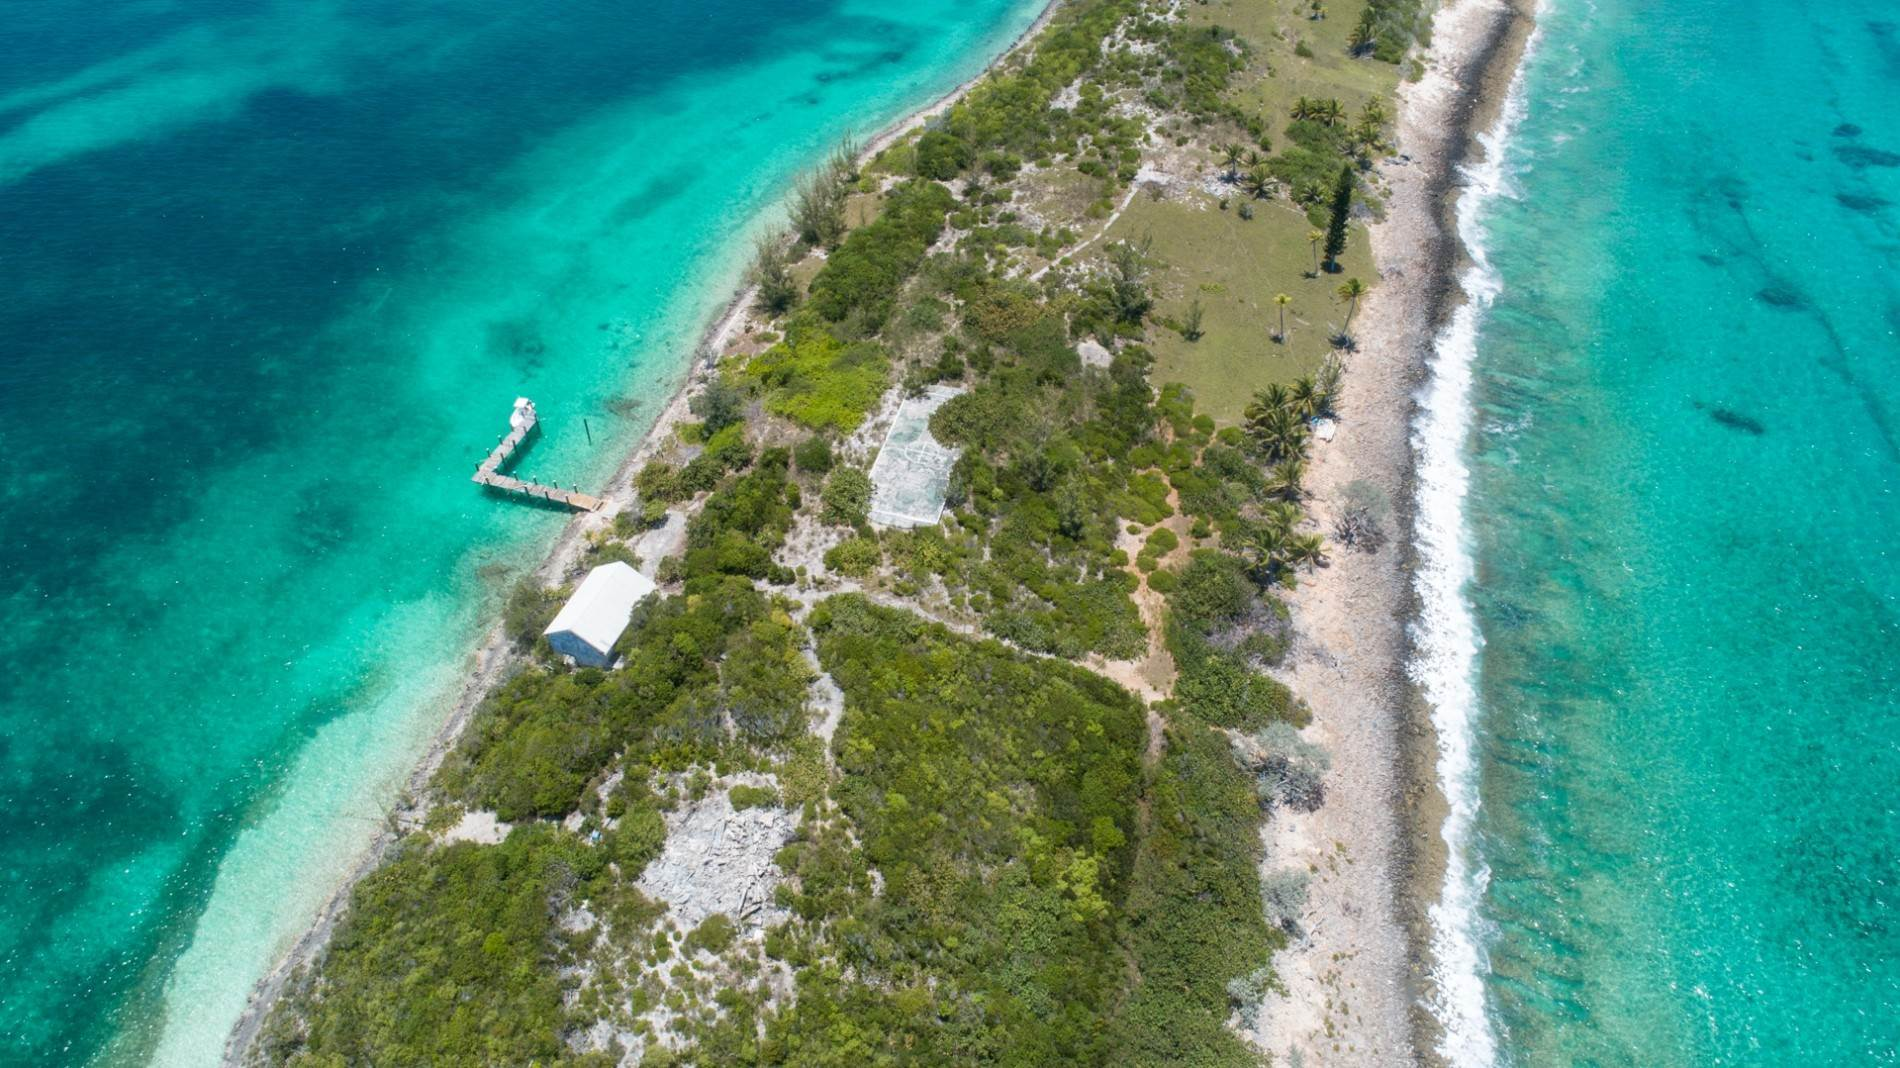 9. Private Islands for Sale at Pierre Island, A Perfect Private Retreat Island Near Harbour Island - MLS 40806 Harbour Island, Eleuthera, Bahamas